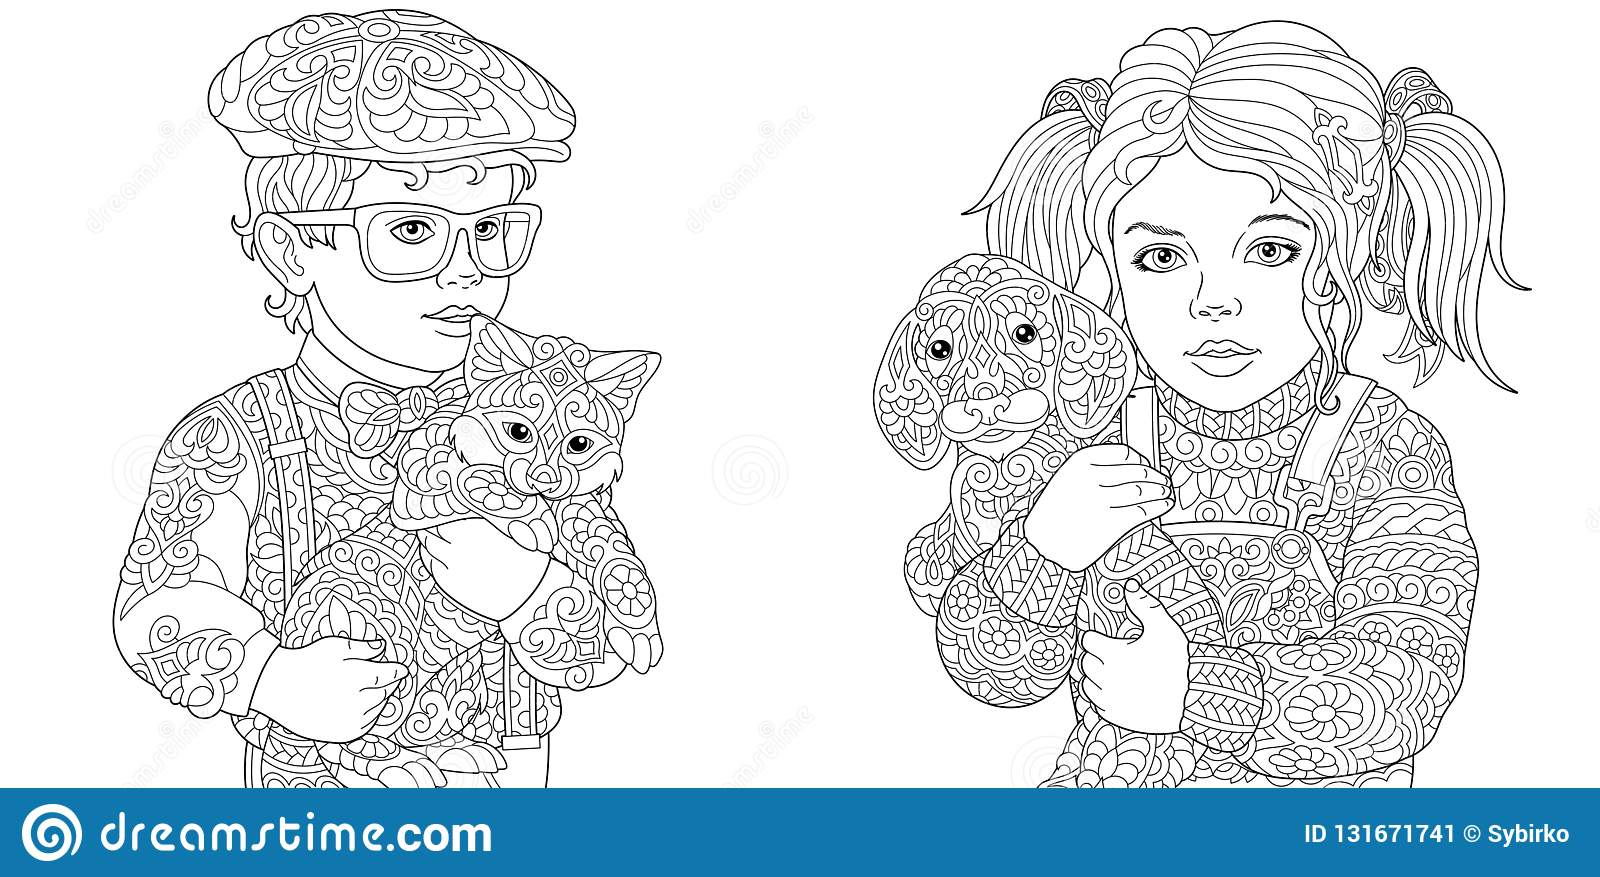 Coloring Pages Coloring Book For Adults Colouring Pictures With Boy And Girl Holding Cat And Dog Drawn In Zentangle Style Stock Vector Illustration Of Child Doodle 131671741